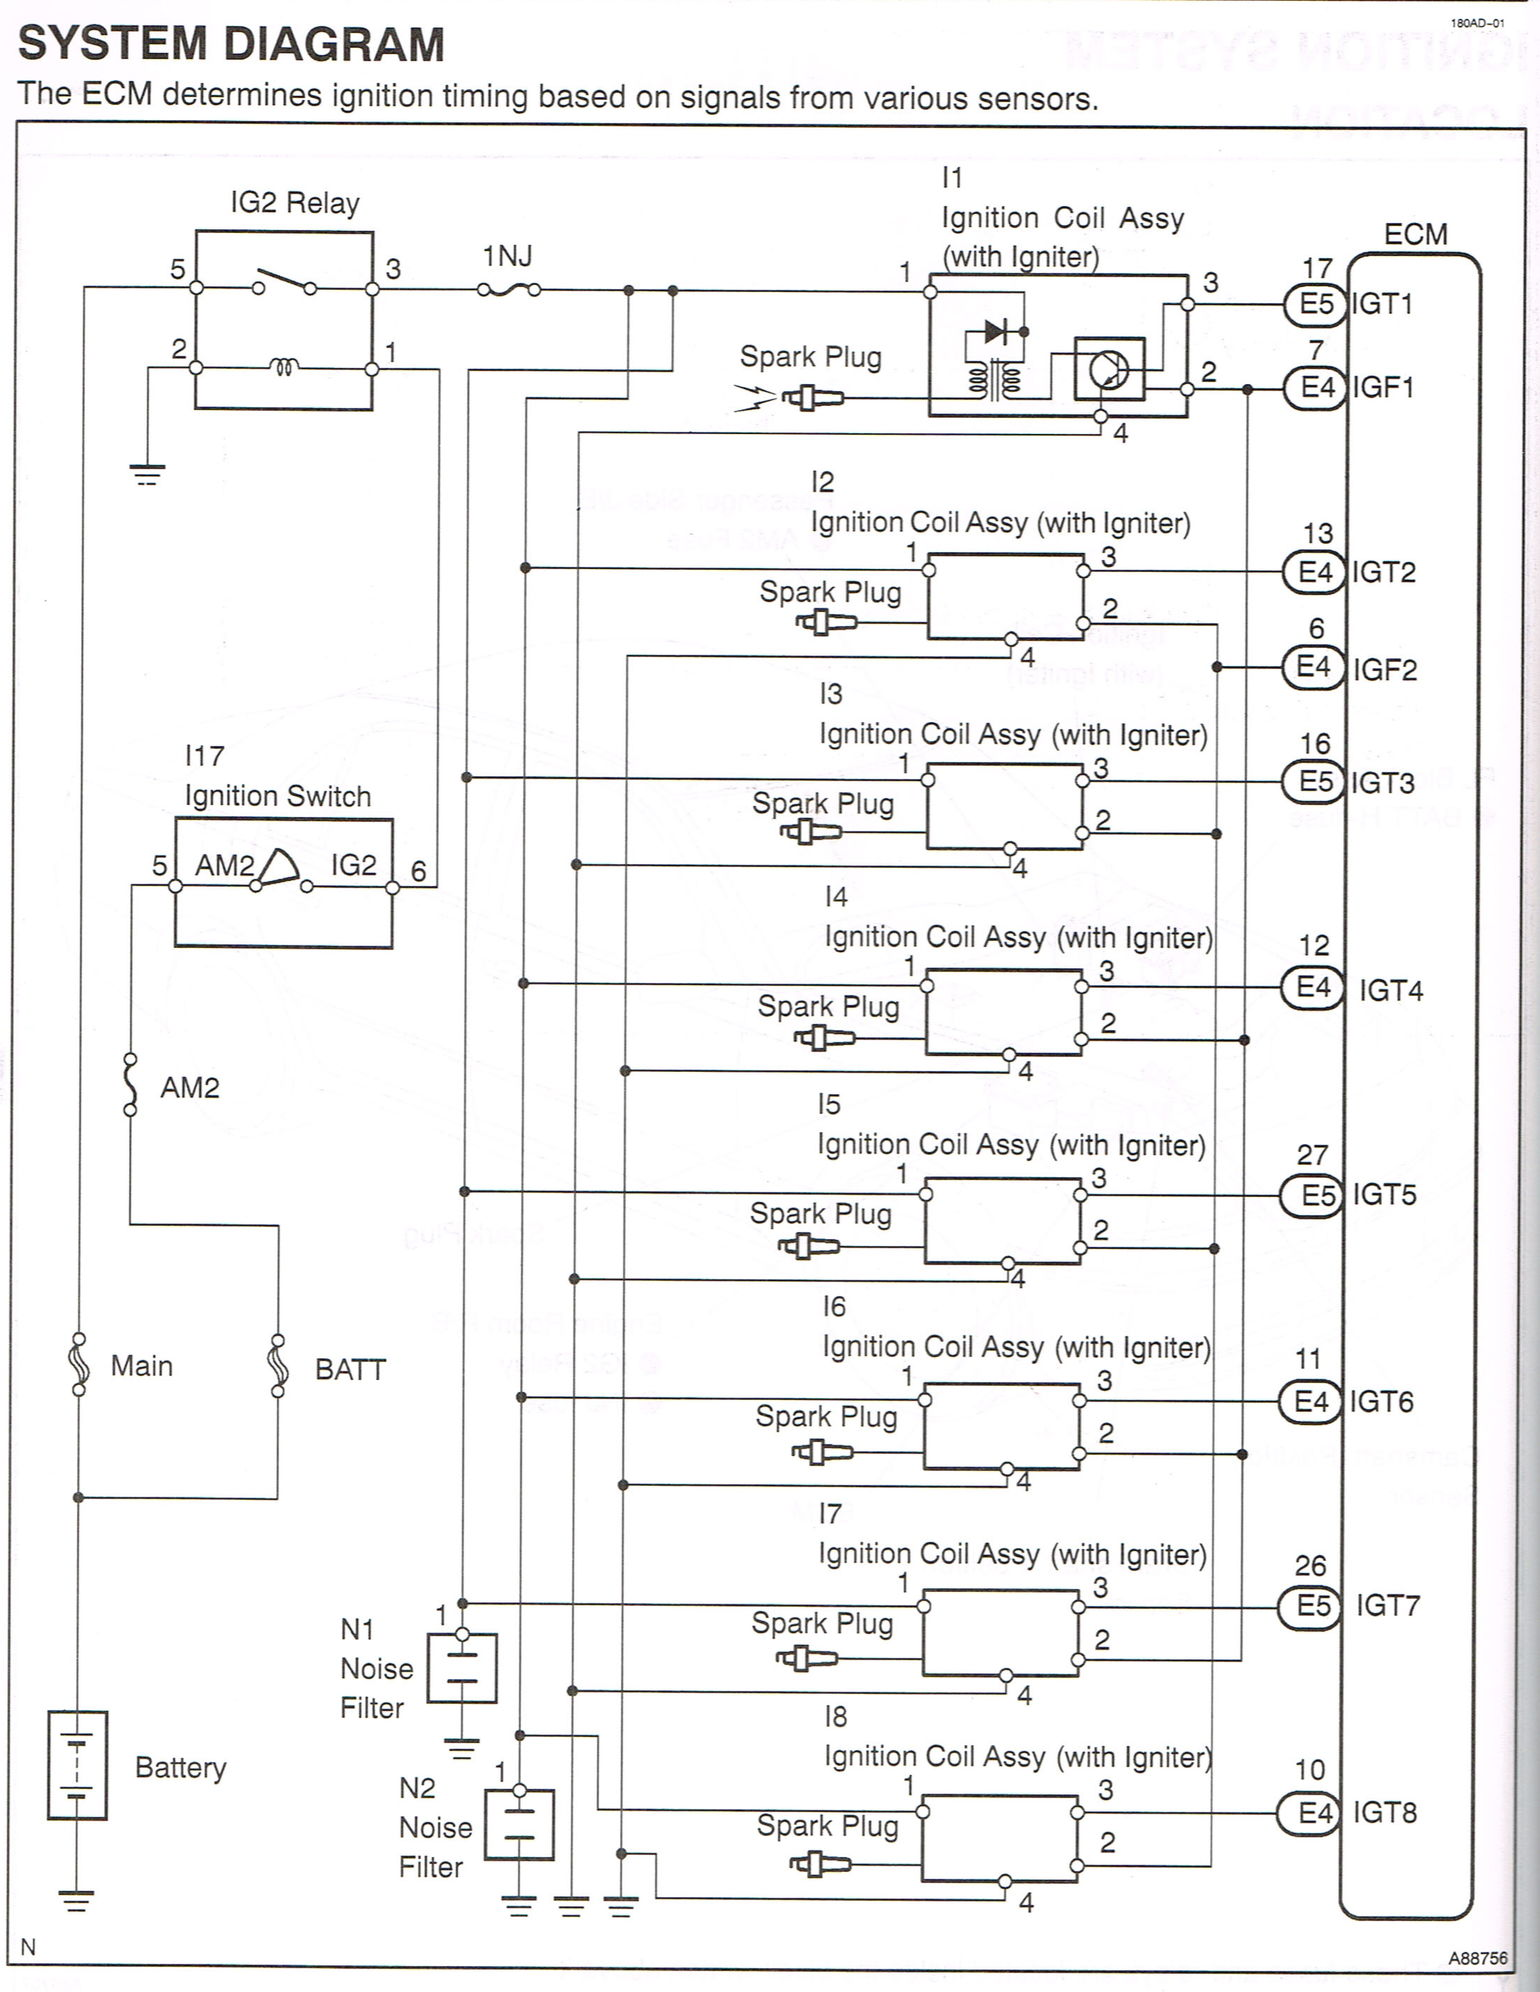 Interav alternator wiring diagram aircraft 2000 forester fuse box cessna alternator wiring diagram new 49cc scooter ignition wiring 80 ign 55c346a6a086e76cf3566c5594a1126435c32ab5 cessna alternator wiring diagram asfbconference2016 Choice Image